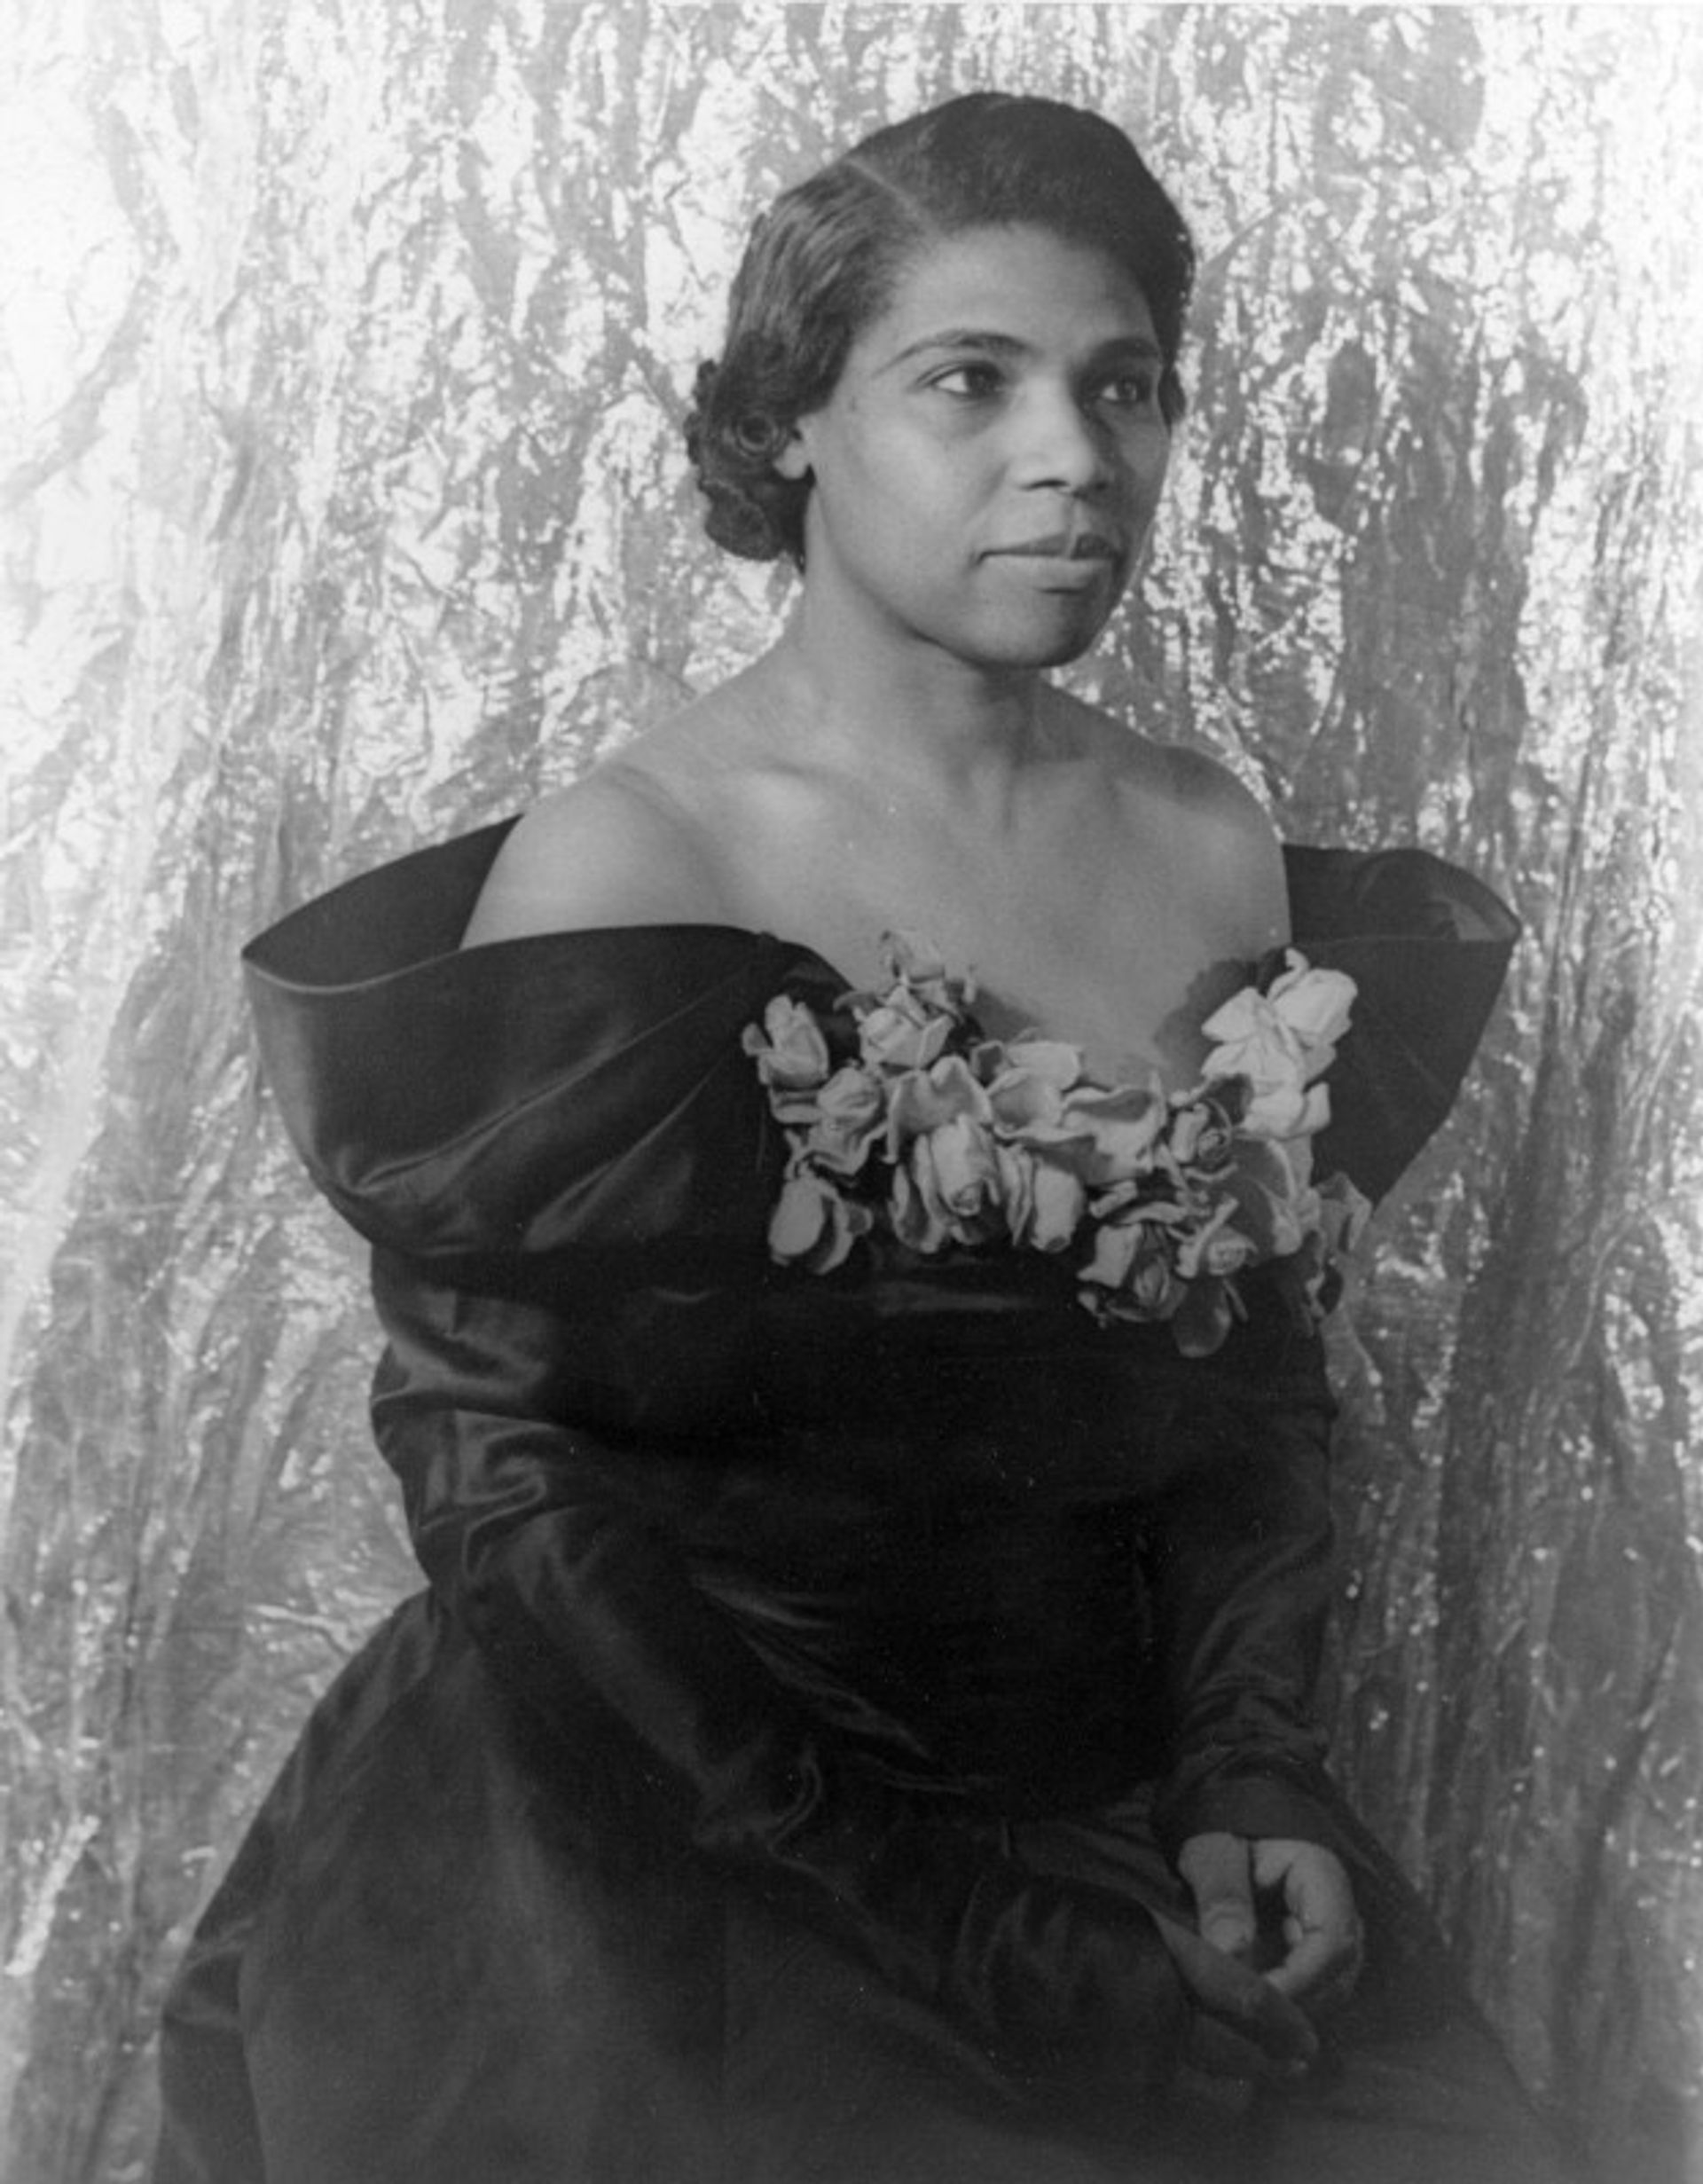 The National Marian Anderson Historical Society and Museum, one of the recipients of the grant, will renovate the Philadelphia home of the late opera singer Marian Anderson National Trust for Historic Preservation